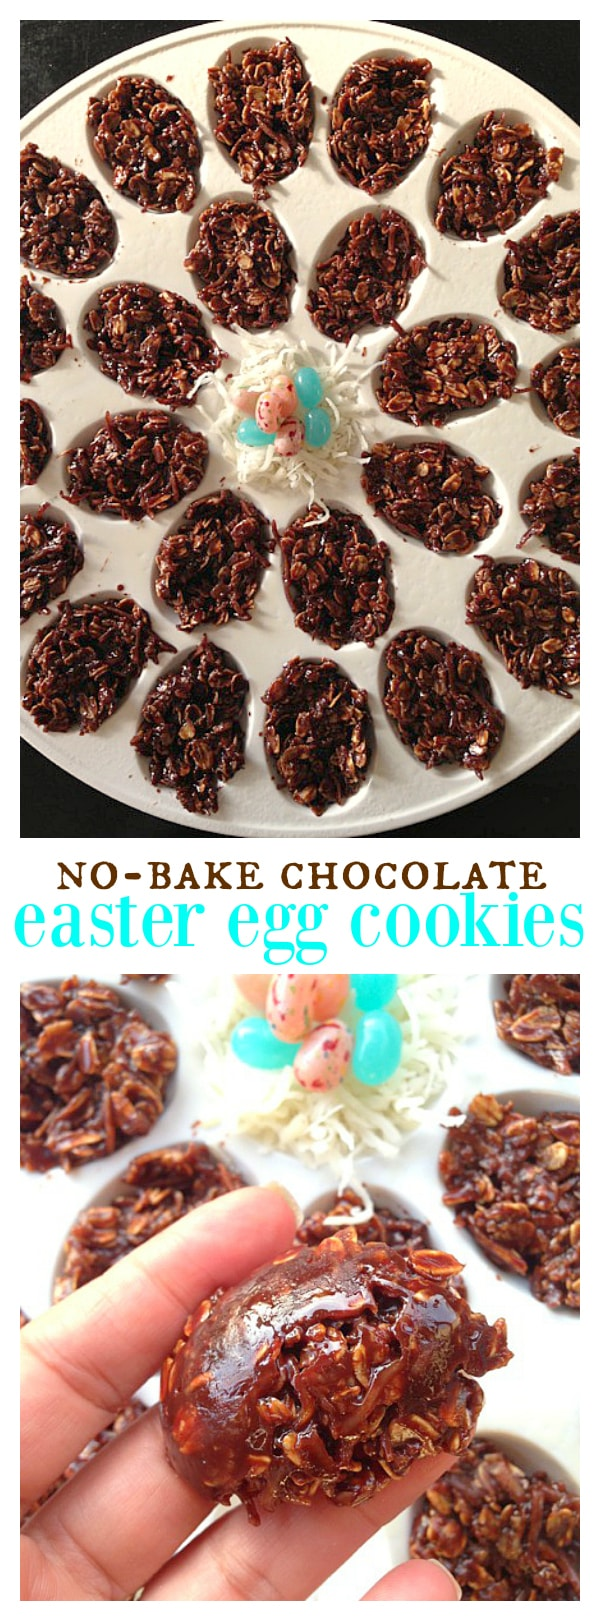 No Bake Chocolate Easter Egg Cookies are a fun DIY for kids and Easter treat!